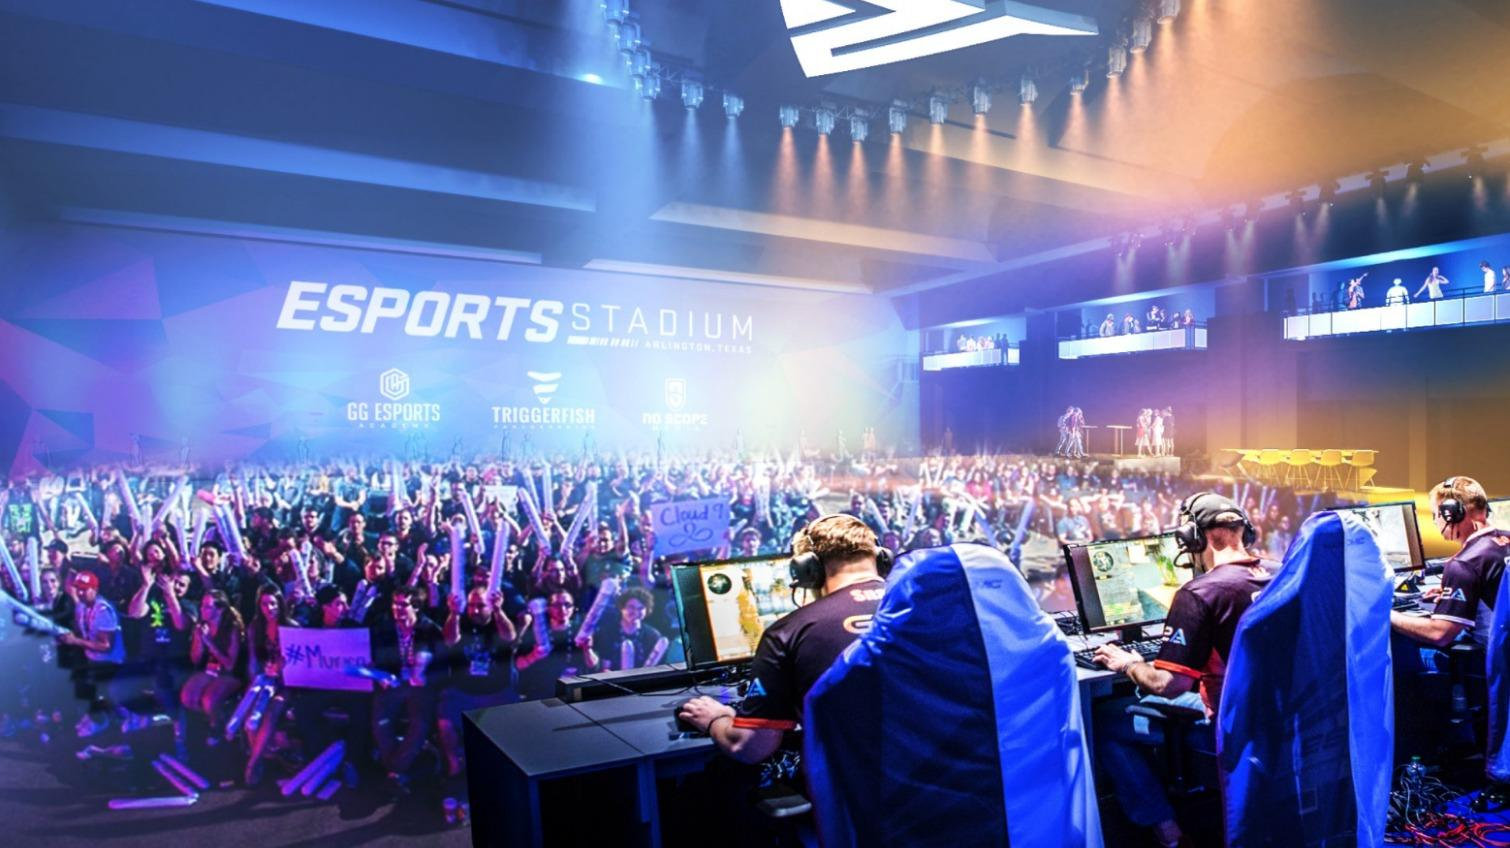 The City and investment firm Esports Ventures will invest US$10m (€8m, £7m) into the project to create 'the most immersive spectator experience in the live esports event market' / Populous